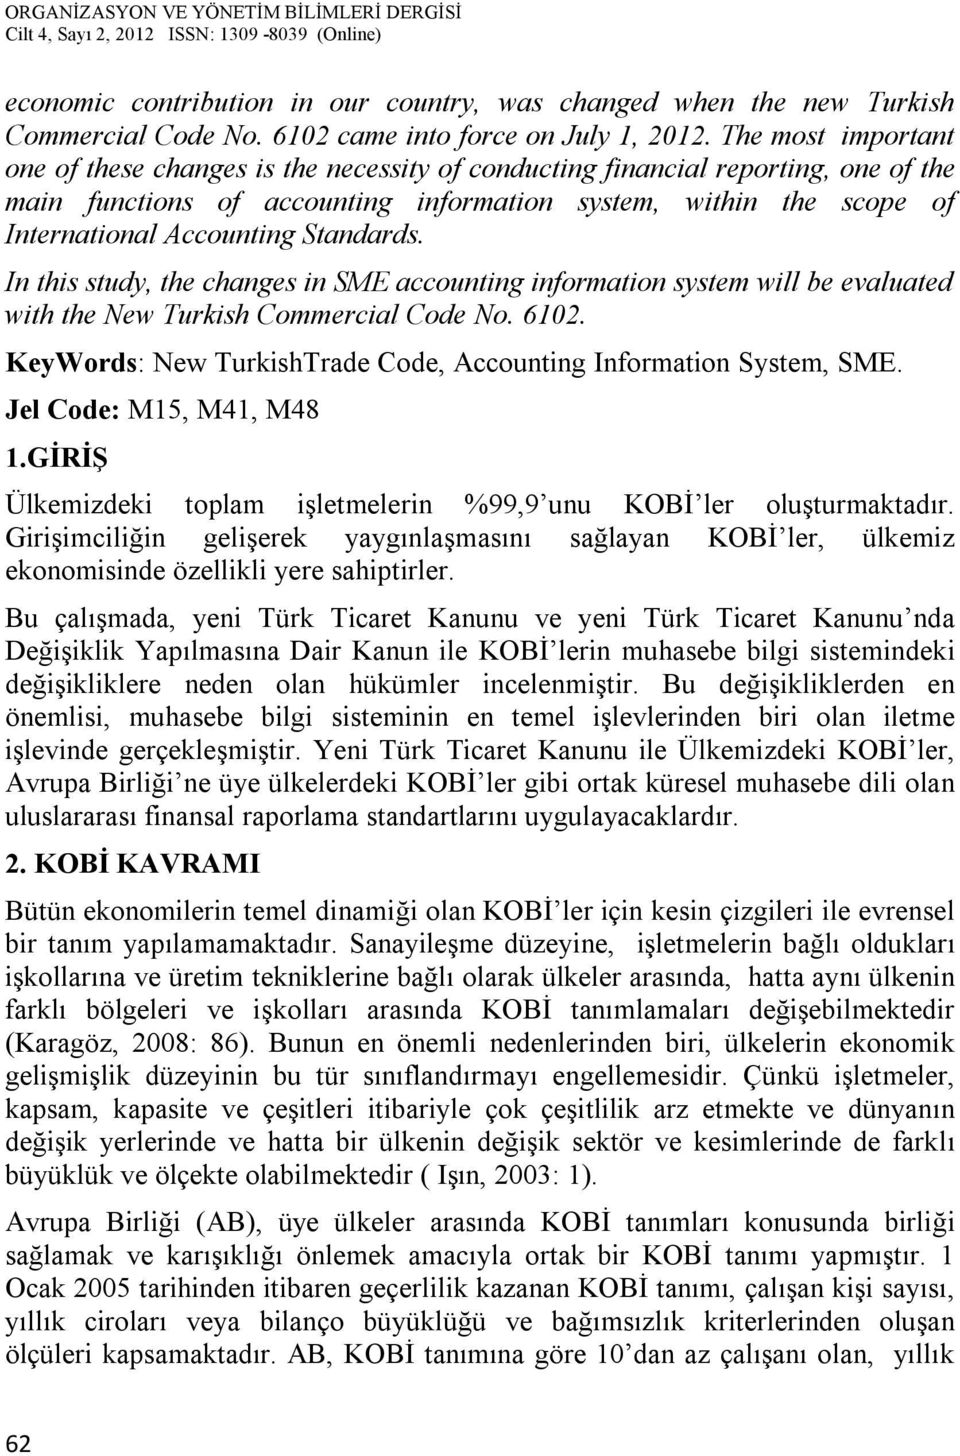 Standards. In this study, the changes in SME accounting information system will be evaluated with the New Turkish Commercial Code No. 6102.